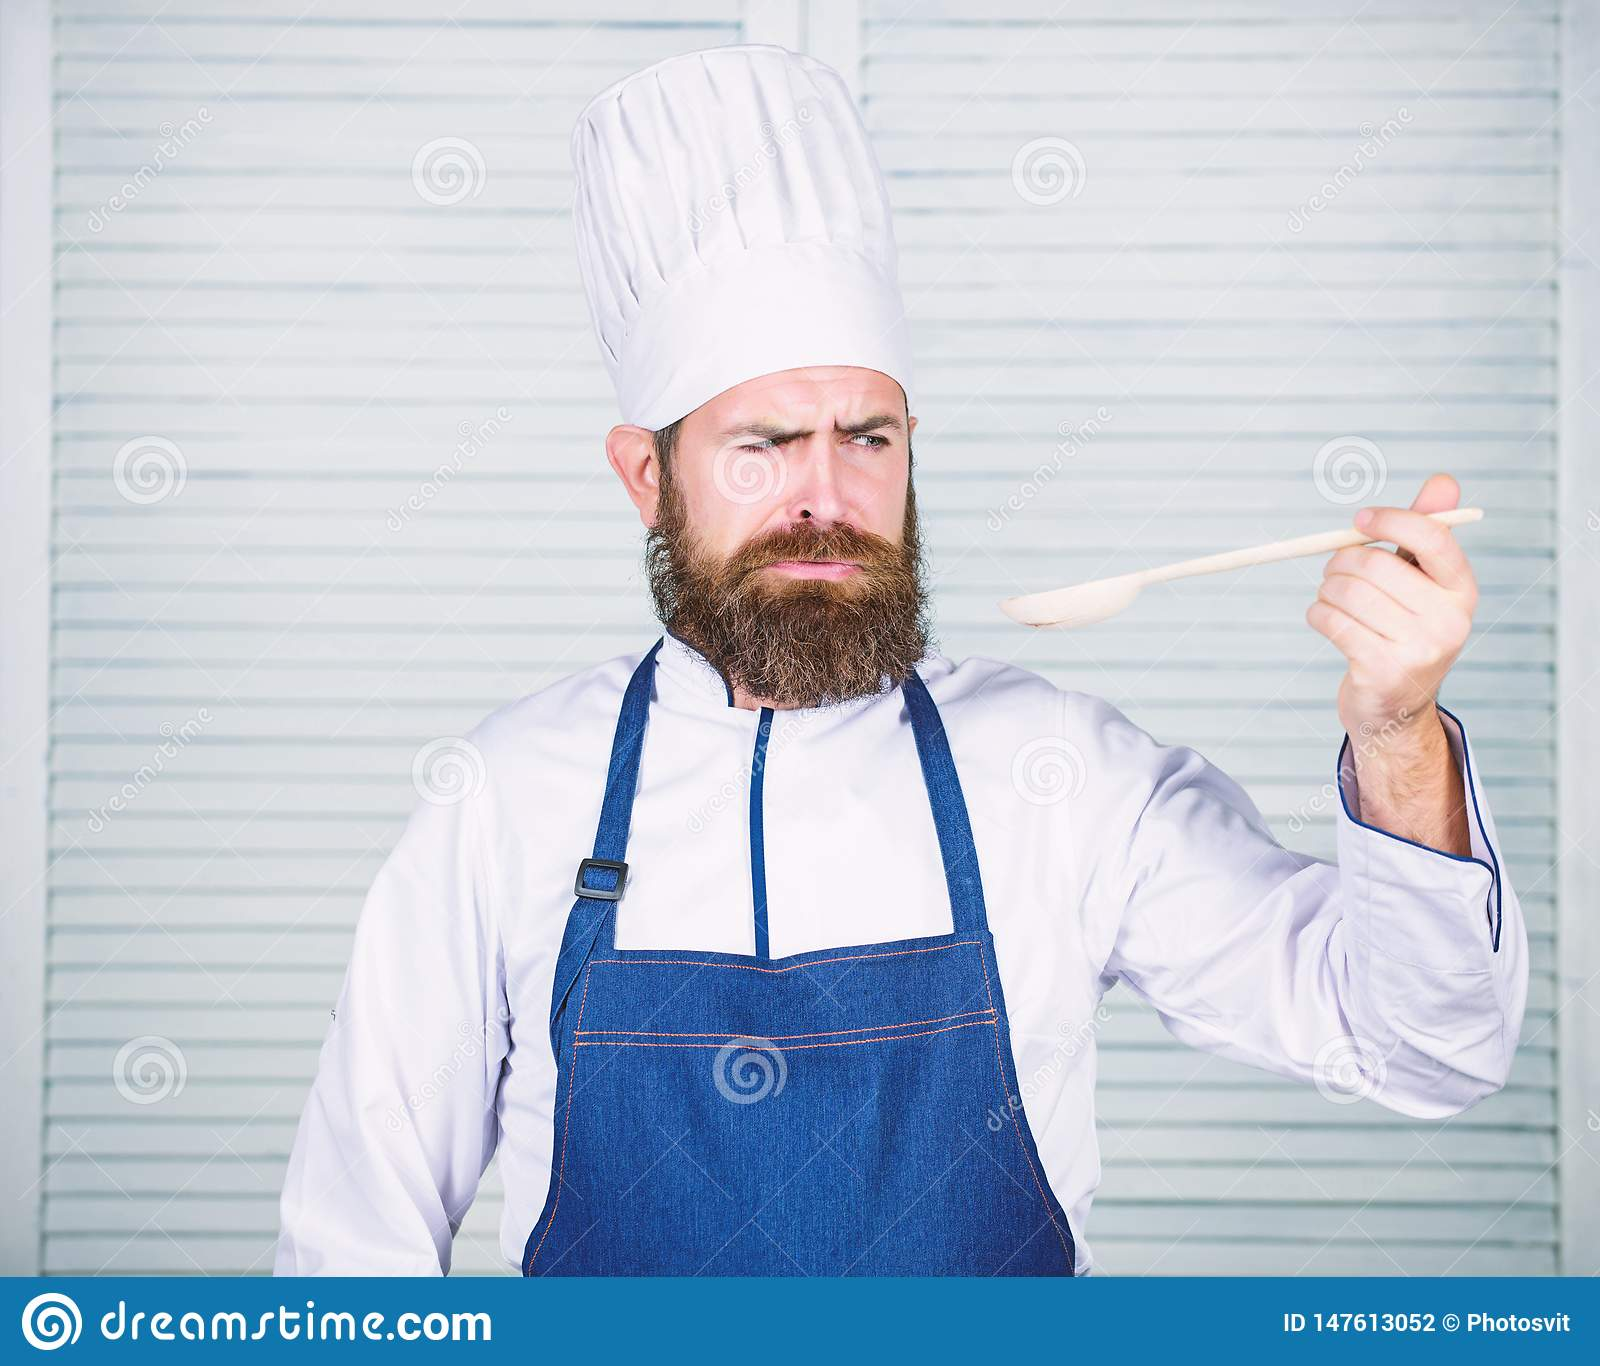 Preparation of food. Healthy food cooking. Bearded man cook in kitchen, culinary. Chef man in hat. Secret taste recipe